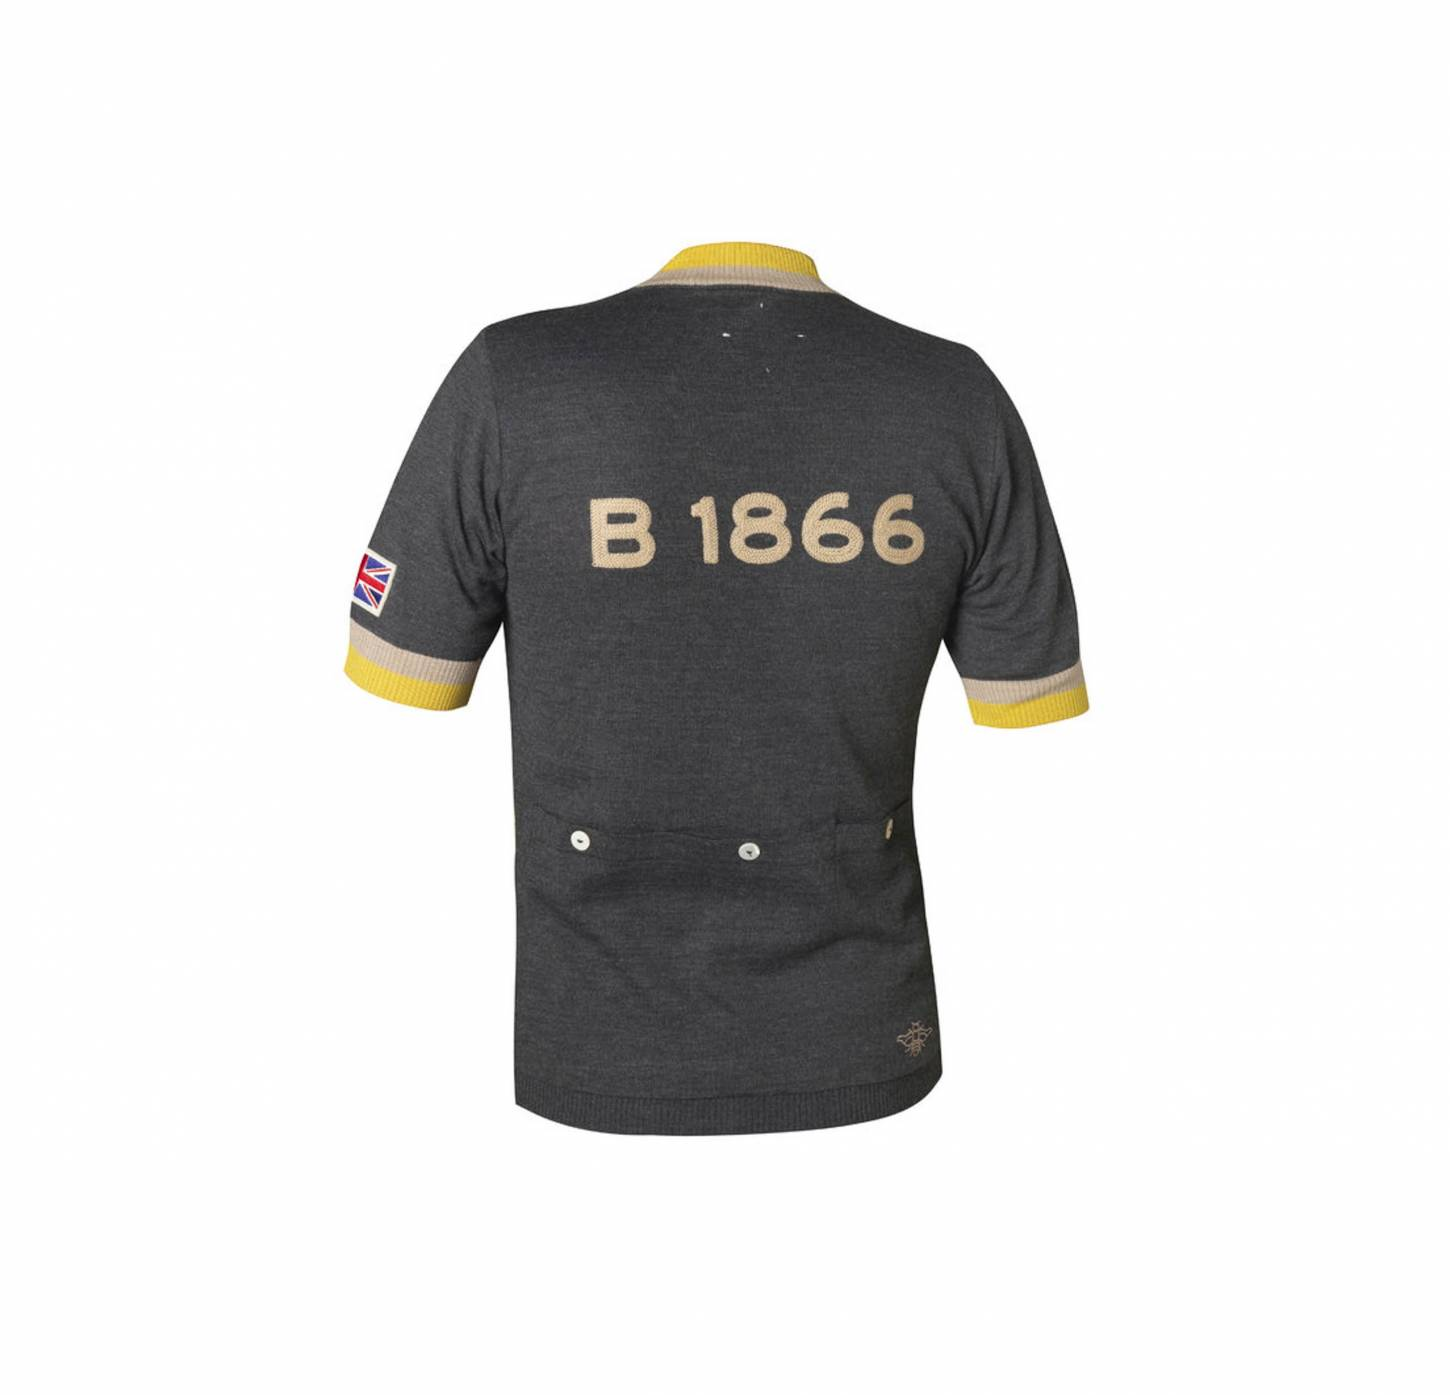 Brooks Trikot L 'Eroica 2015 Cycling Jersey B1866 Rennrad Trikot Team Brooks